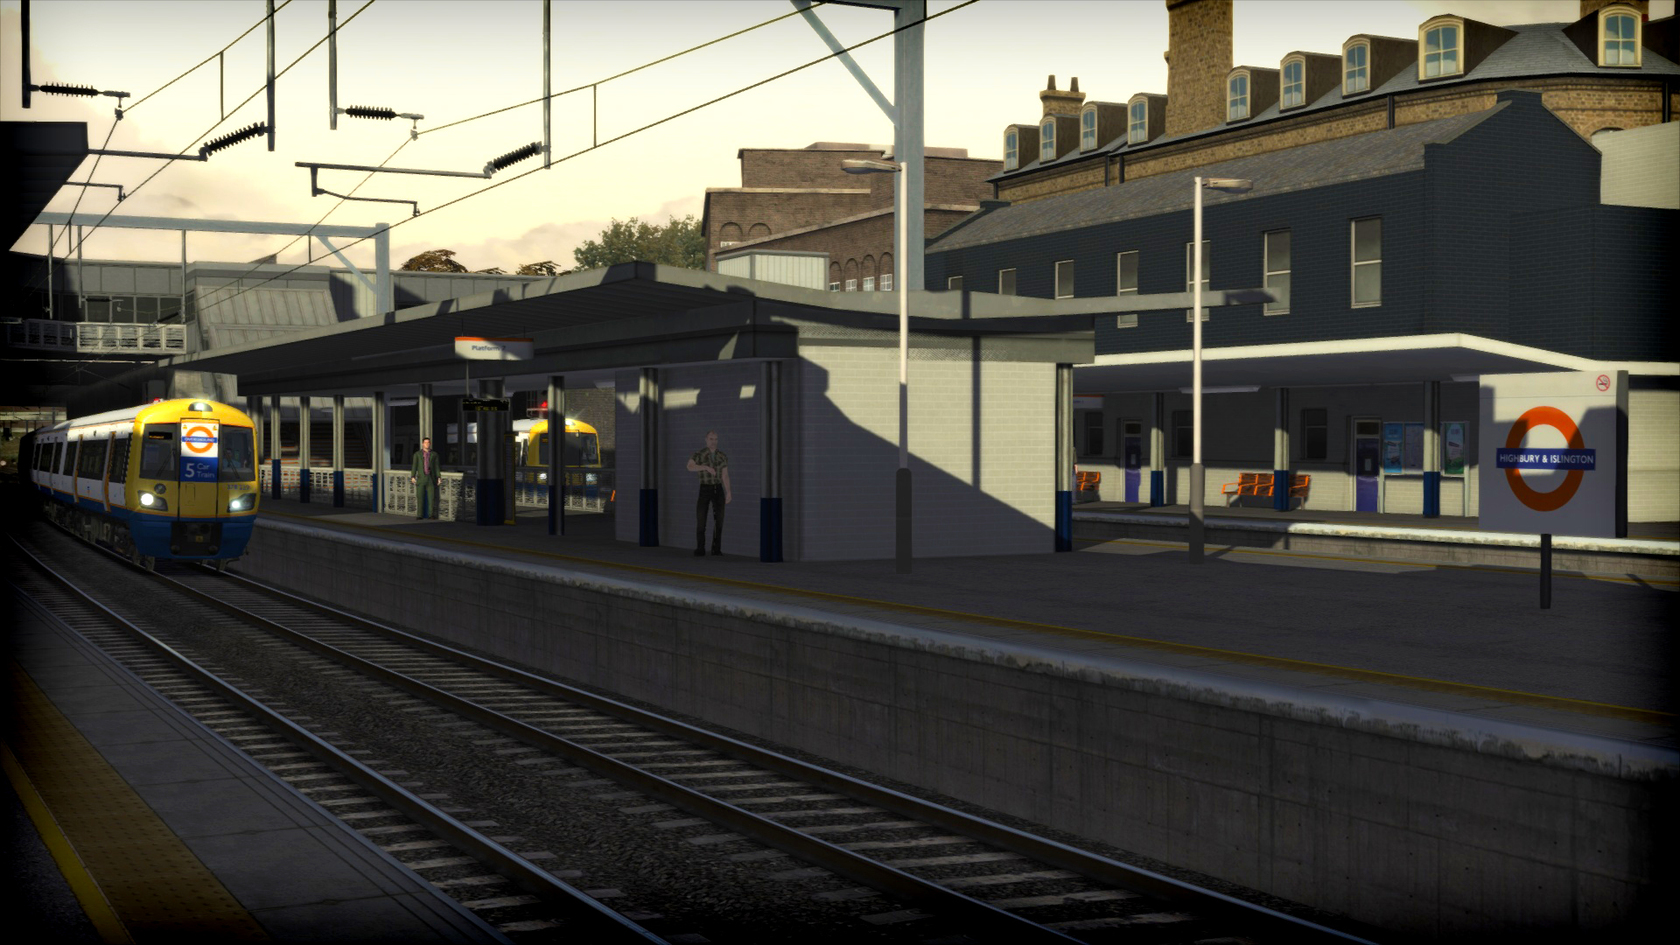 Train Simulator route